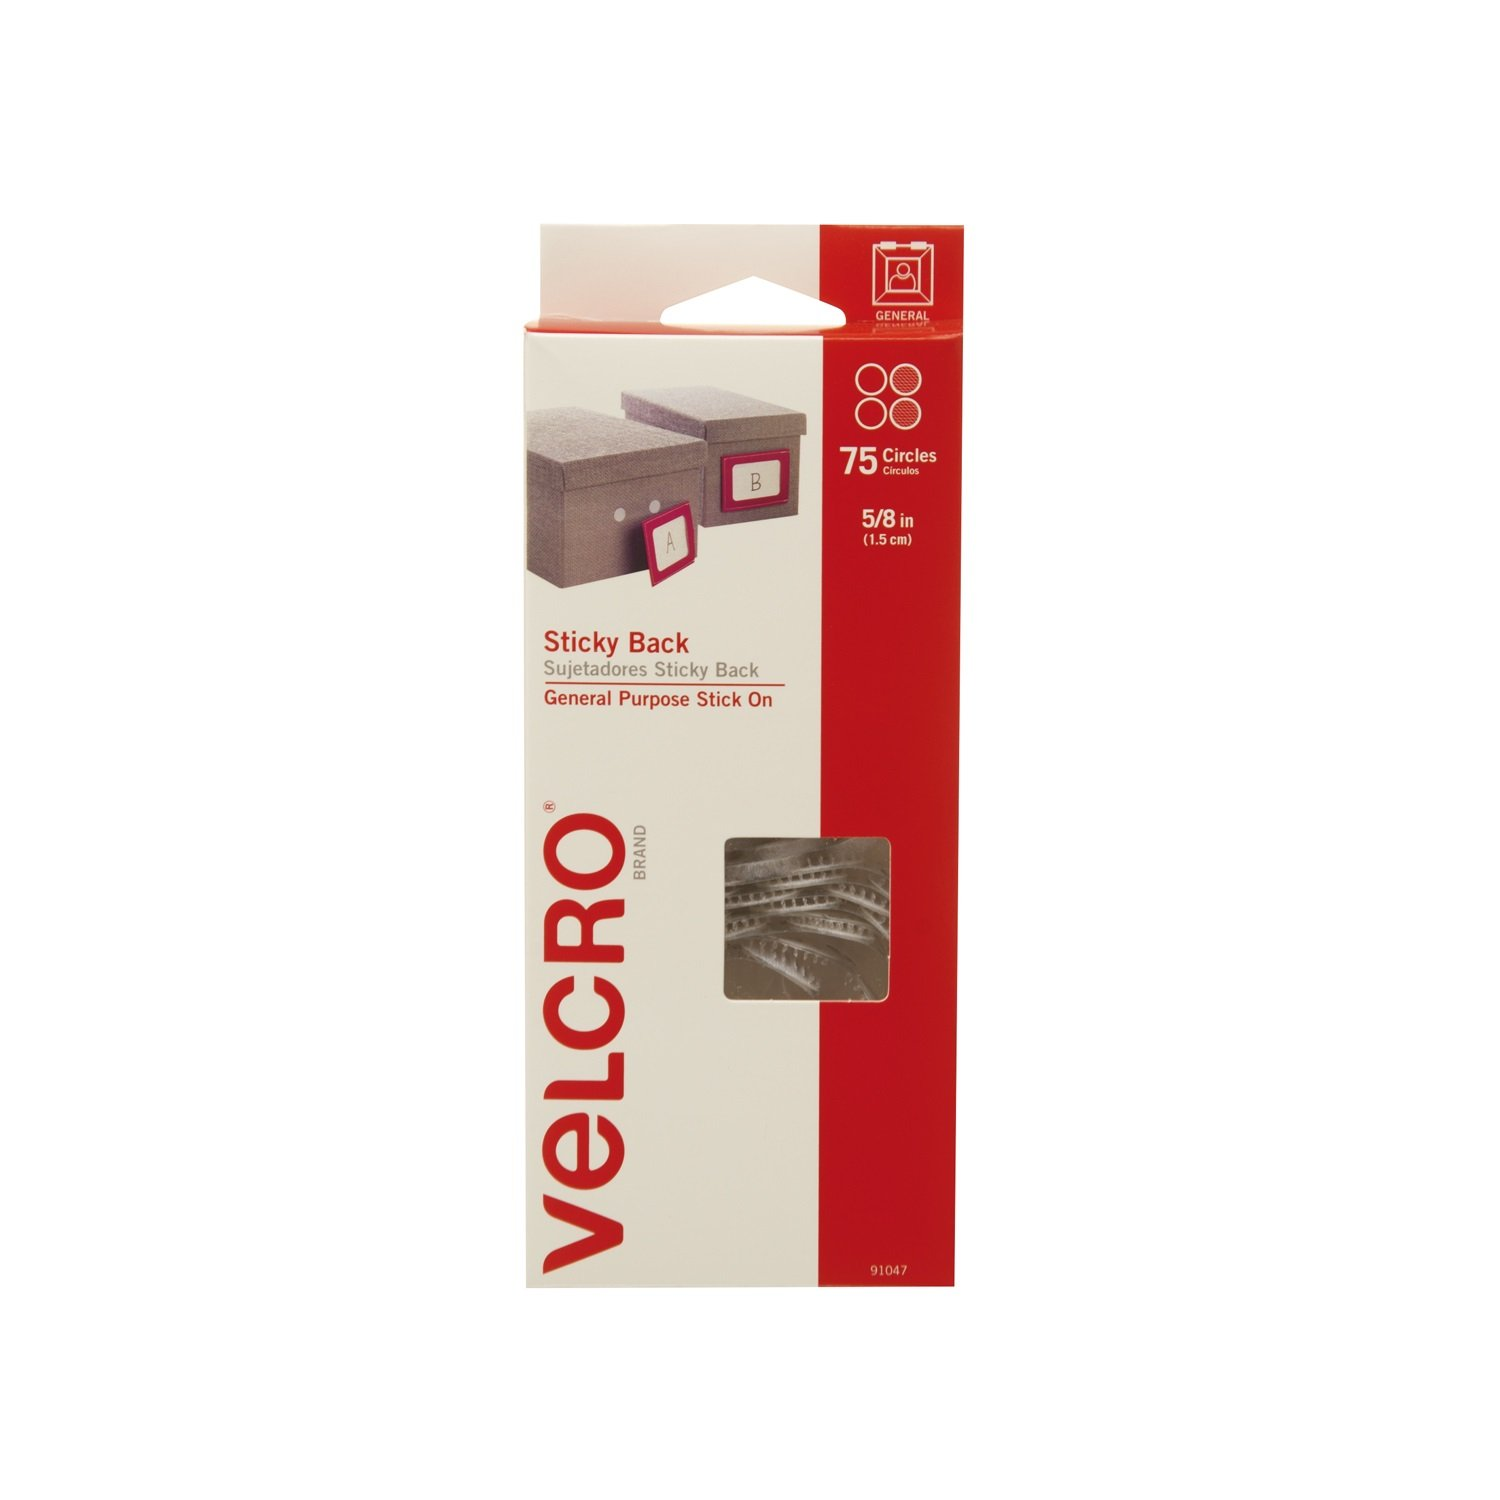 VELCRO Brand - Sticky Back Hook and Loop Fasteners | General Purpose Peel & Stick | Perfect for Home or Office | 5/8in Circles | Pack of 75 | White